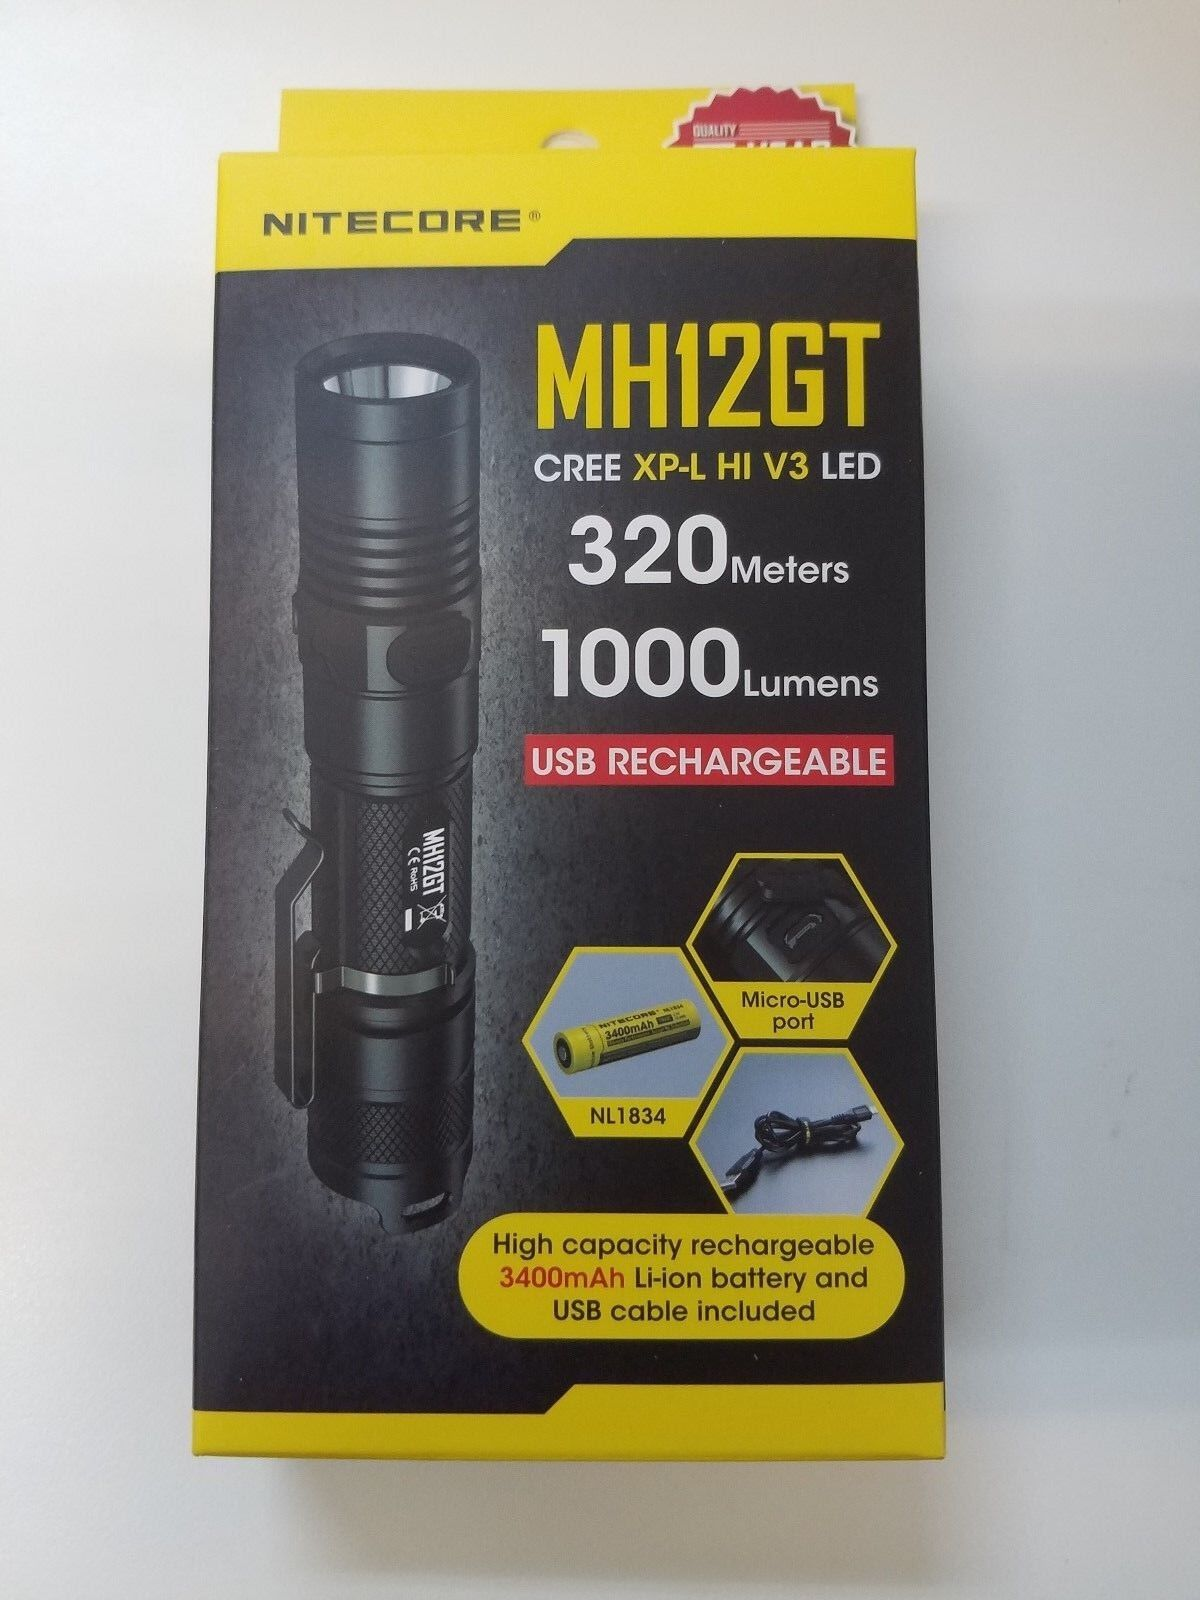 Nitecore MH12GT CREE XP-L HI V3 LED  USB Rechargeable Tactical Flashlight  all in high quality and low price